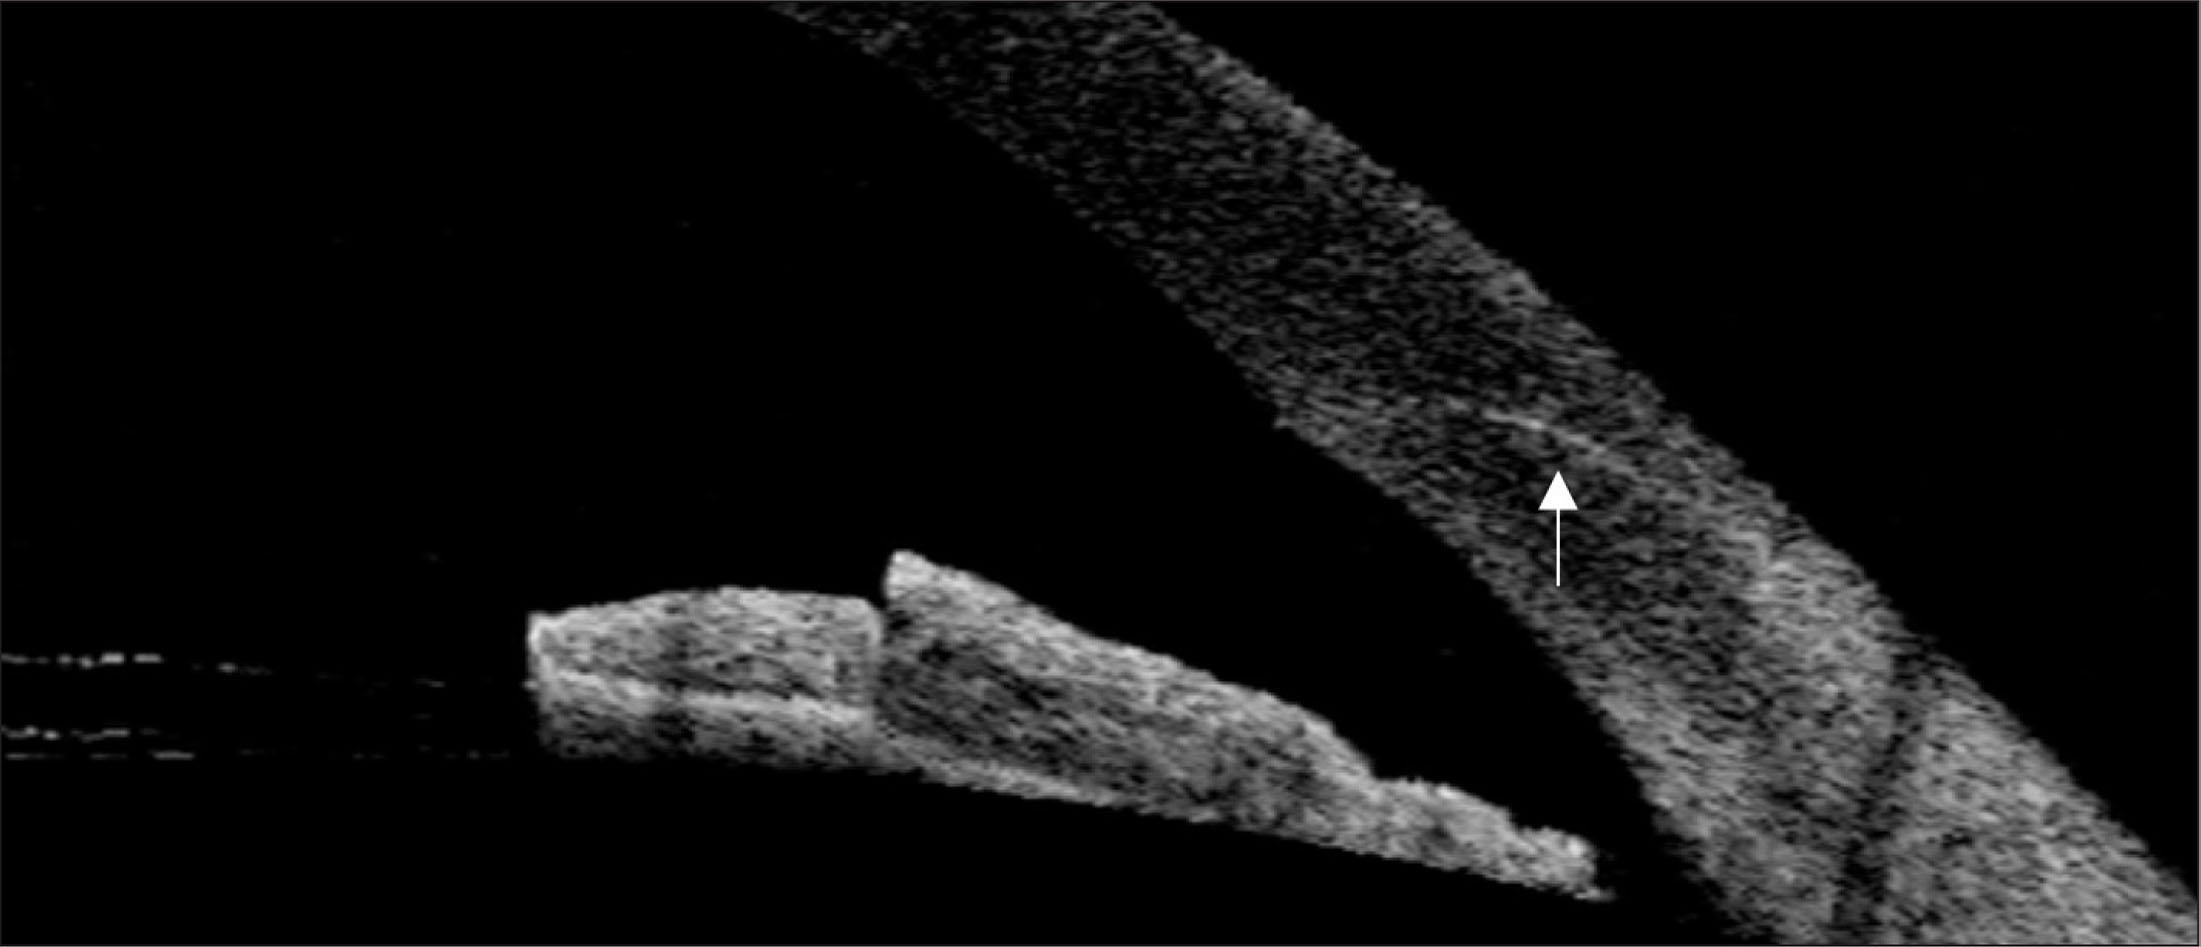 Anterior segment optical coherence tomographic image of the corneal incision site on postoperative day 1. A two-step wound configuration (white arrow) was observed.